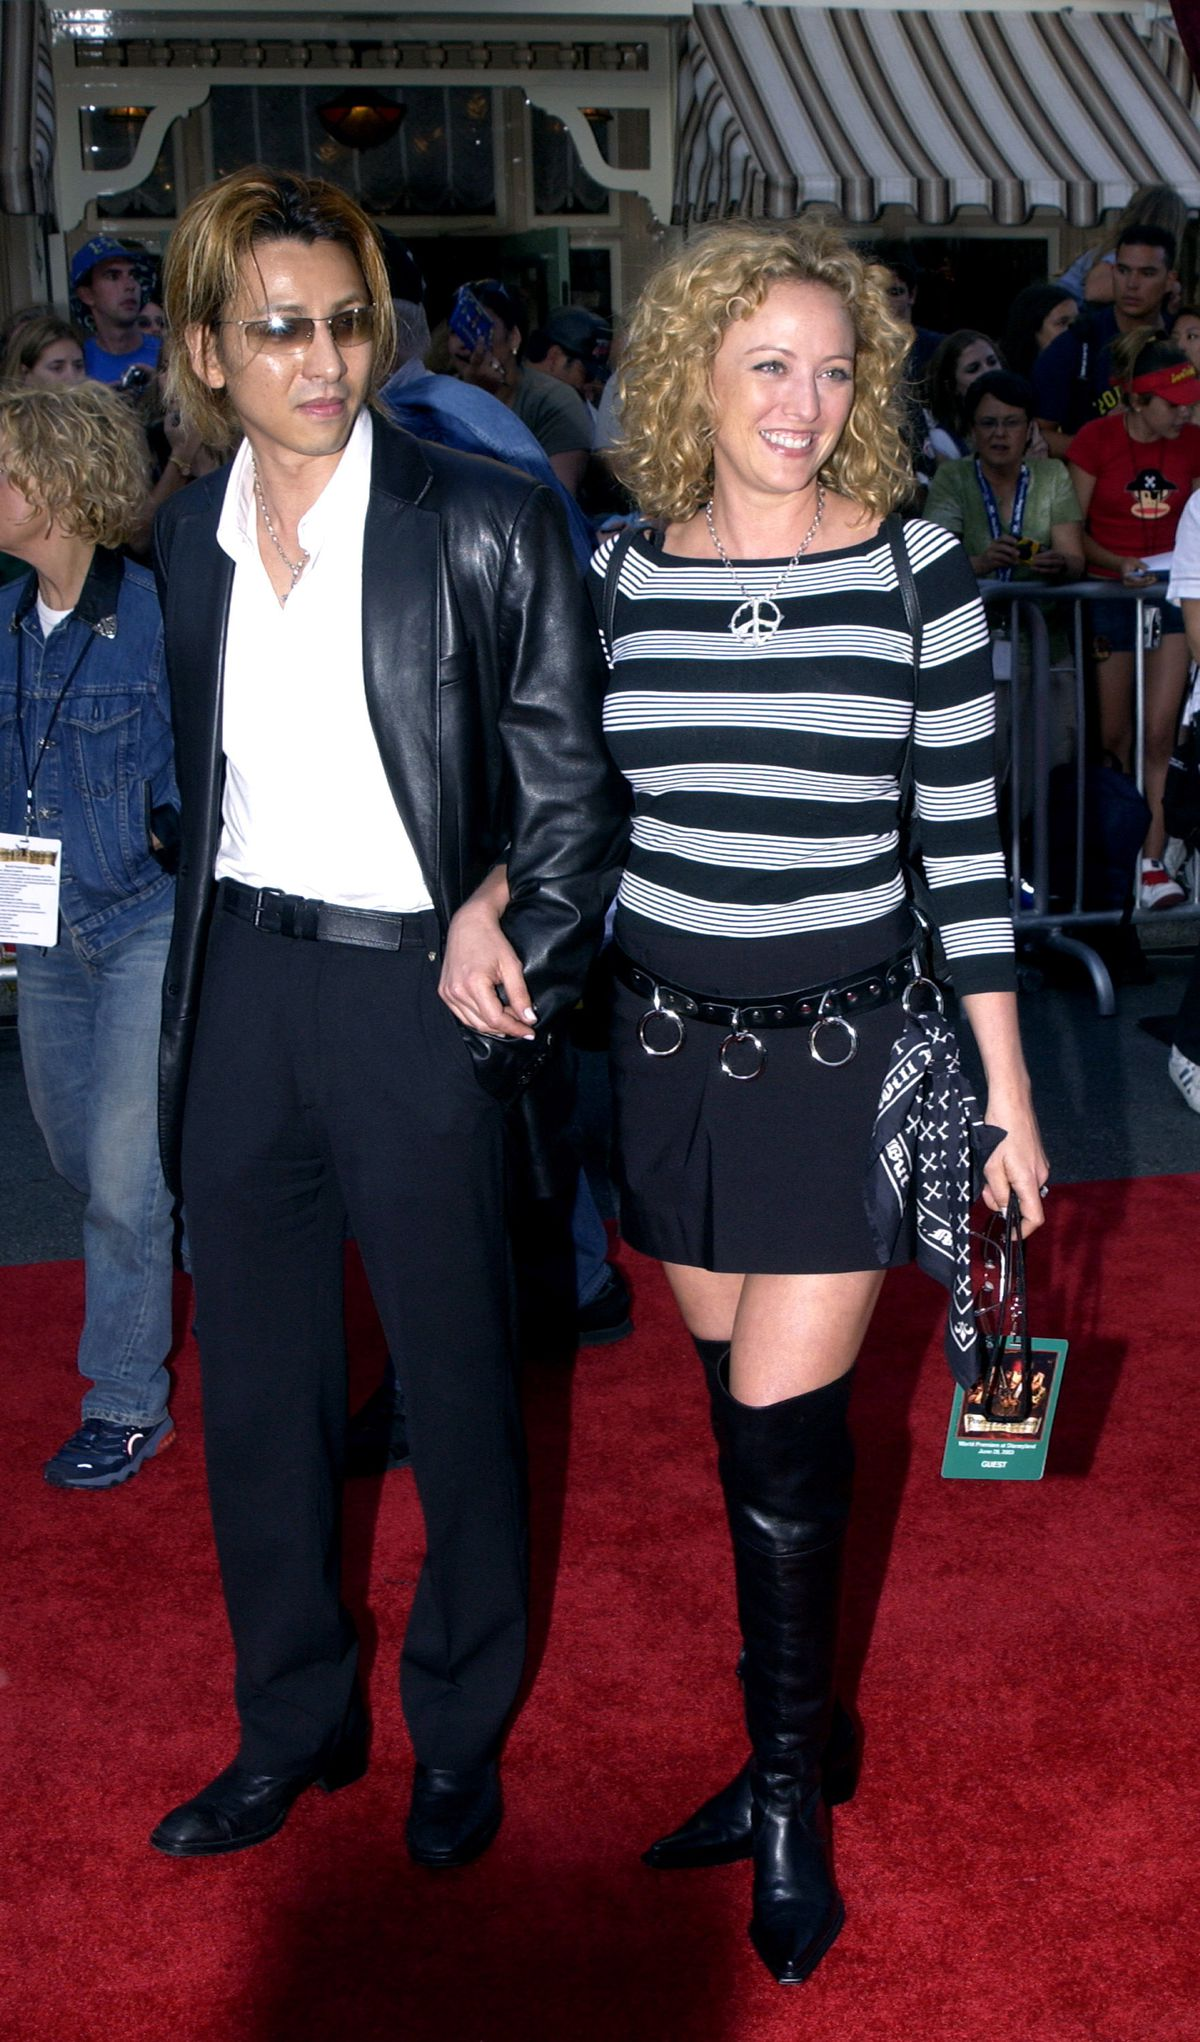 Virginia Madsen and Yoshiki at the Pirates of the Caribbean premiere